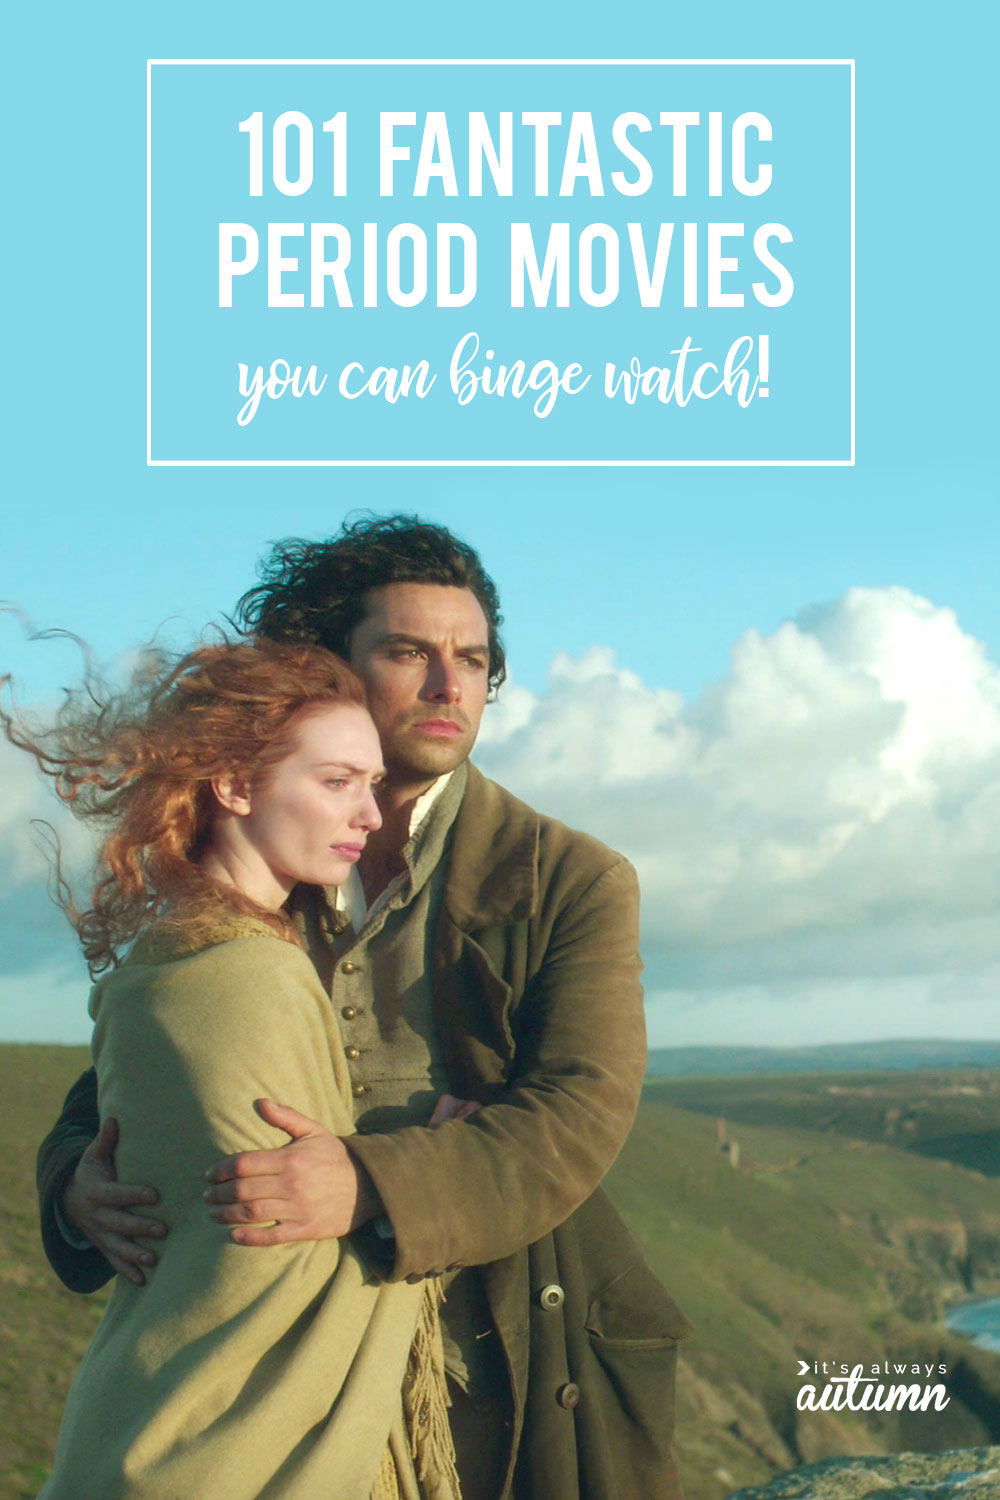 101 of the best period movies, period drama, historical romance movies and more!